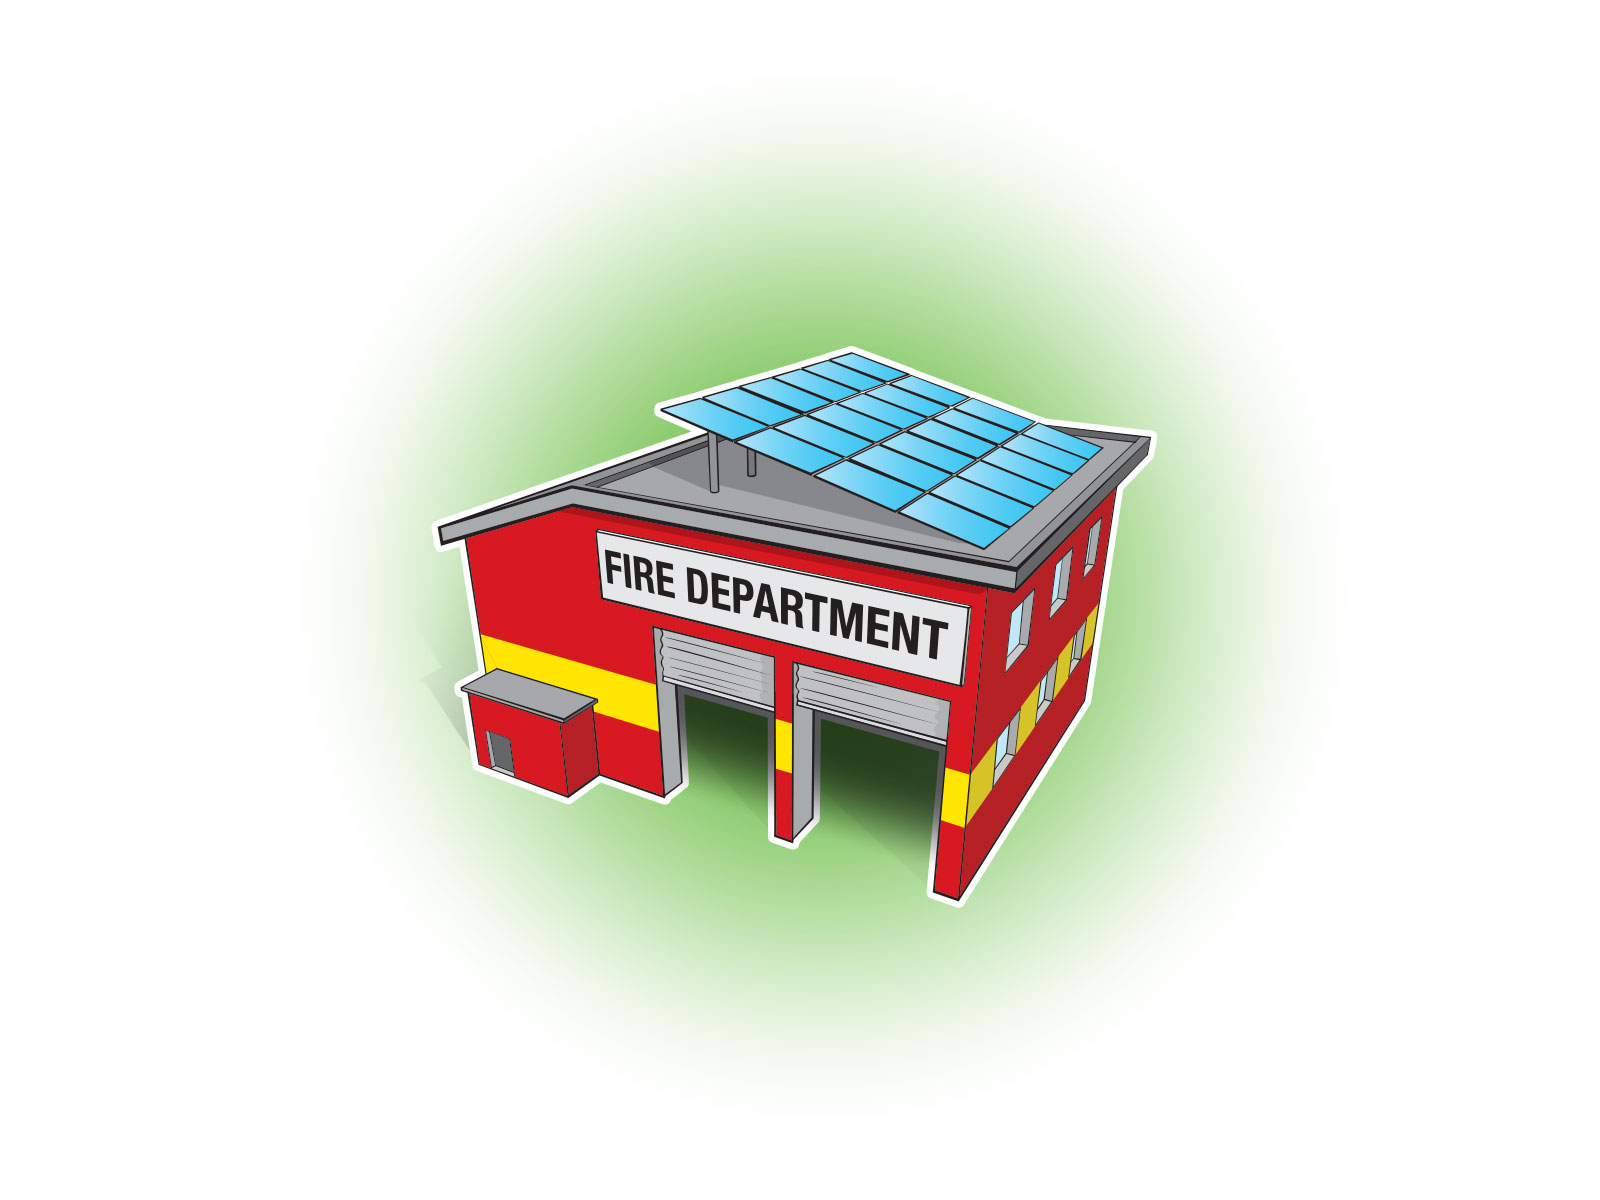 Stylised vector illustrations of fire department with solar panels